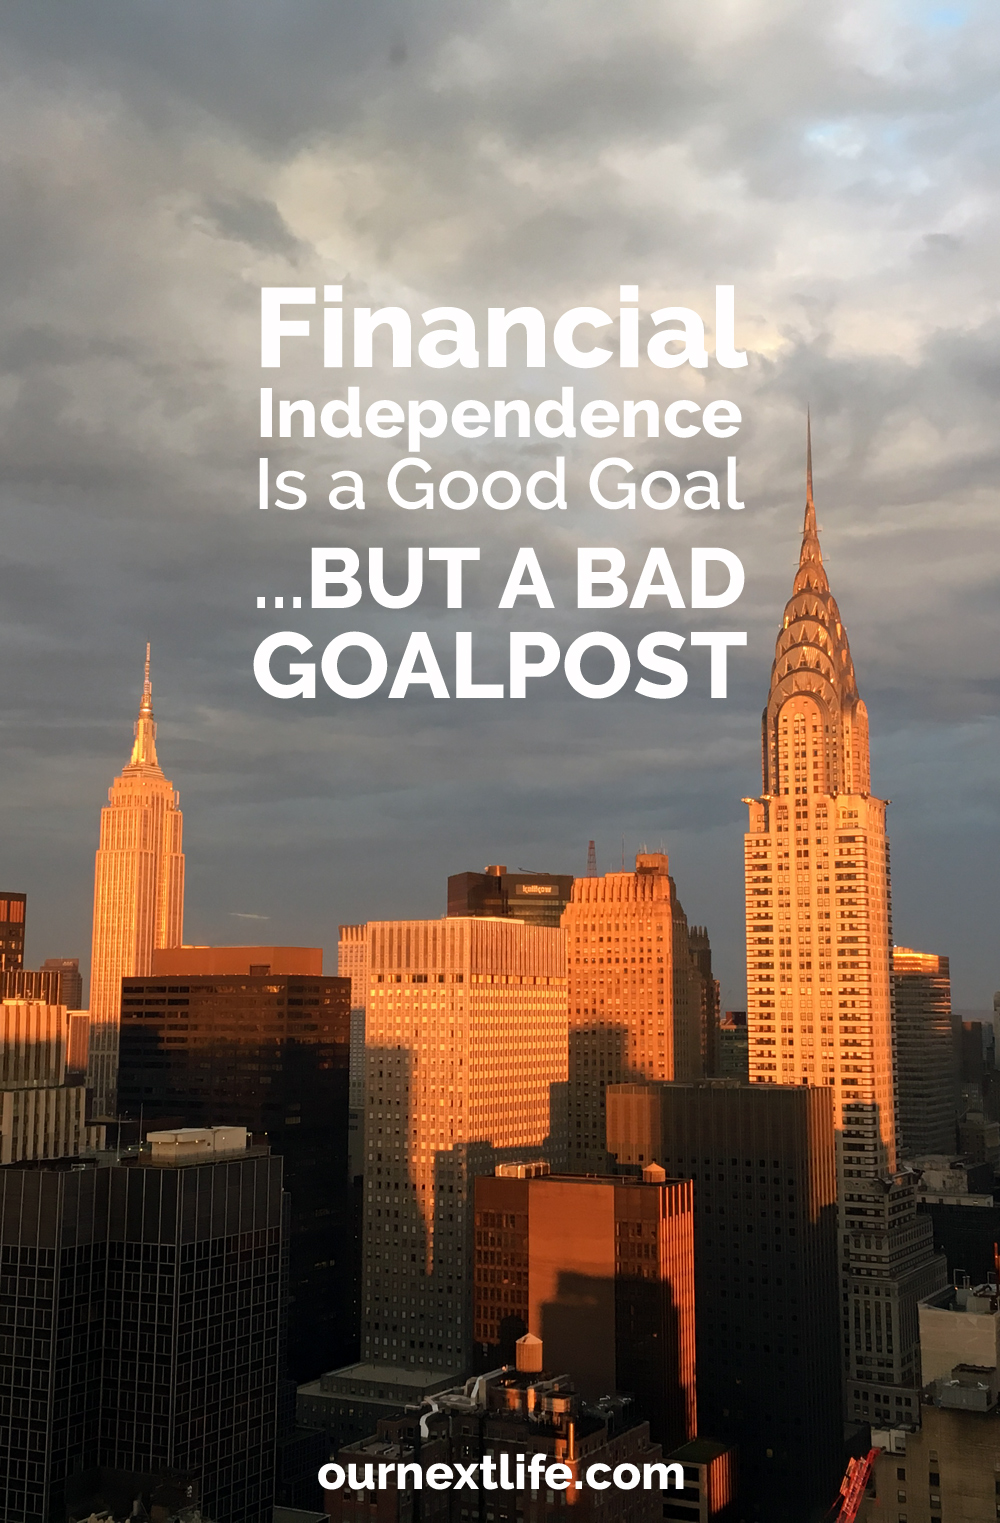 OurNextLife.com // Financial Independence Is a Good Goal... But a Bad Goalpost // Financial independence doesn't change who you are or bring happiness, it simply brings more security. It's great to aim for financial independence, but don't expect it to be the miracle cure, or the point after which you are your best self.